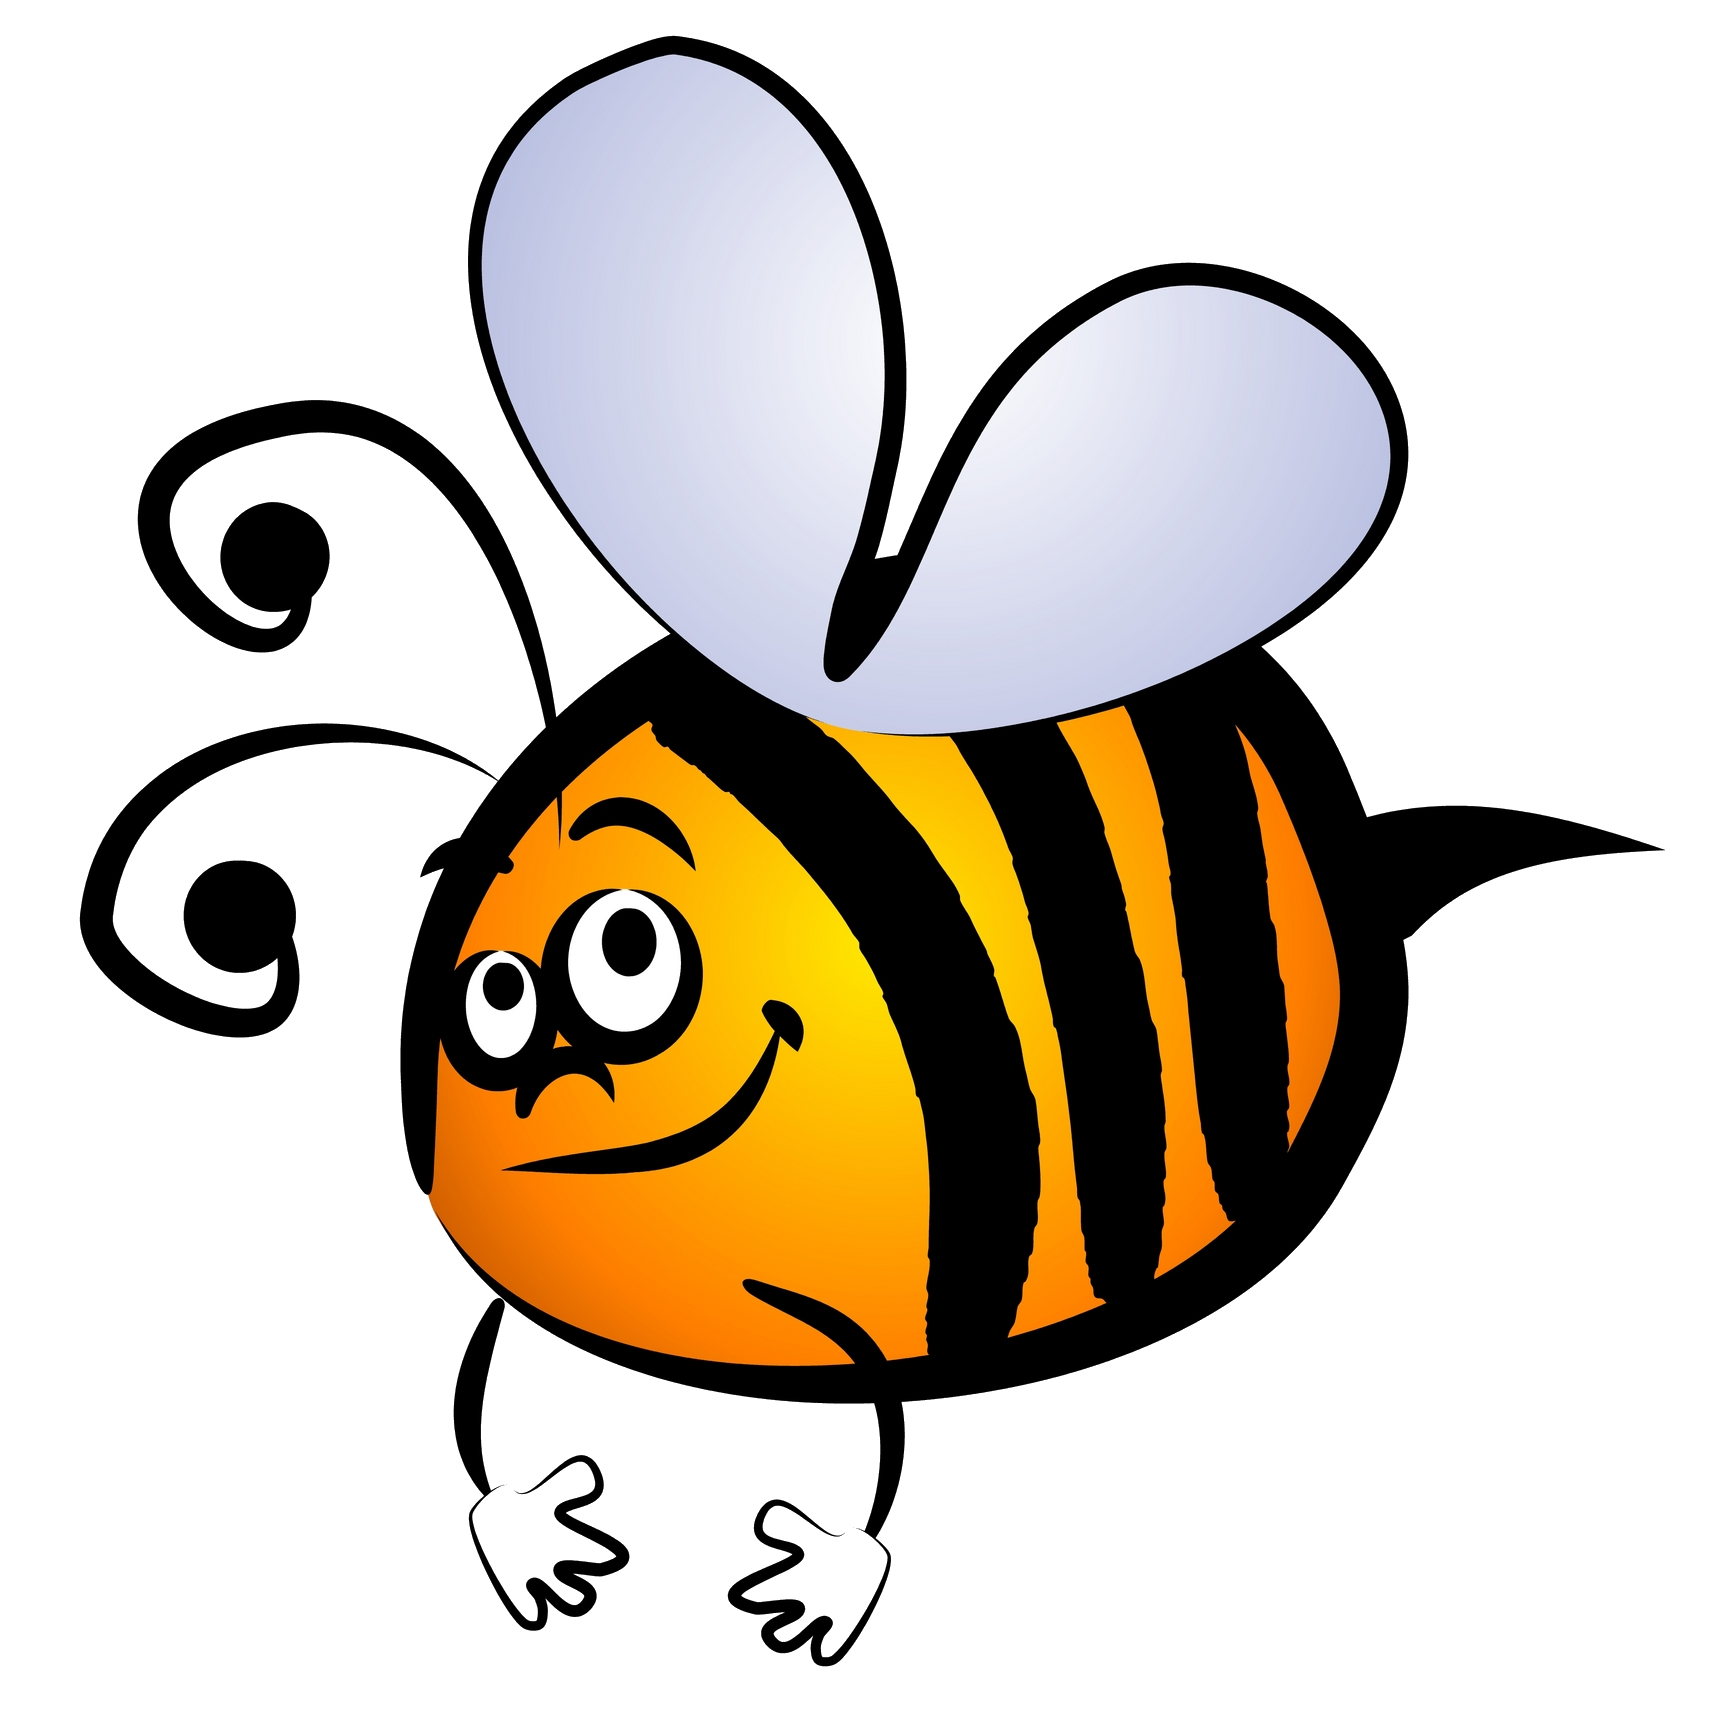 Bees transparent blank background. Free honey bee